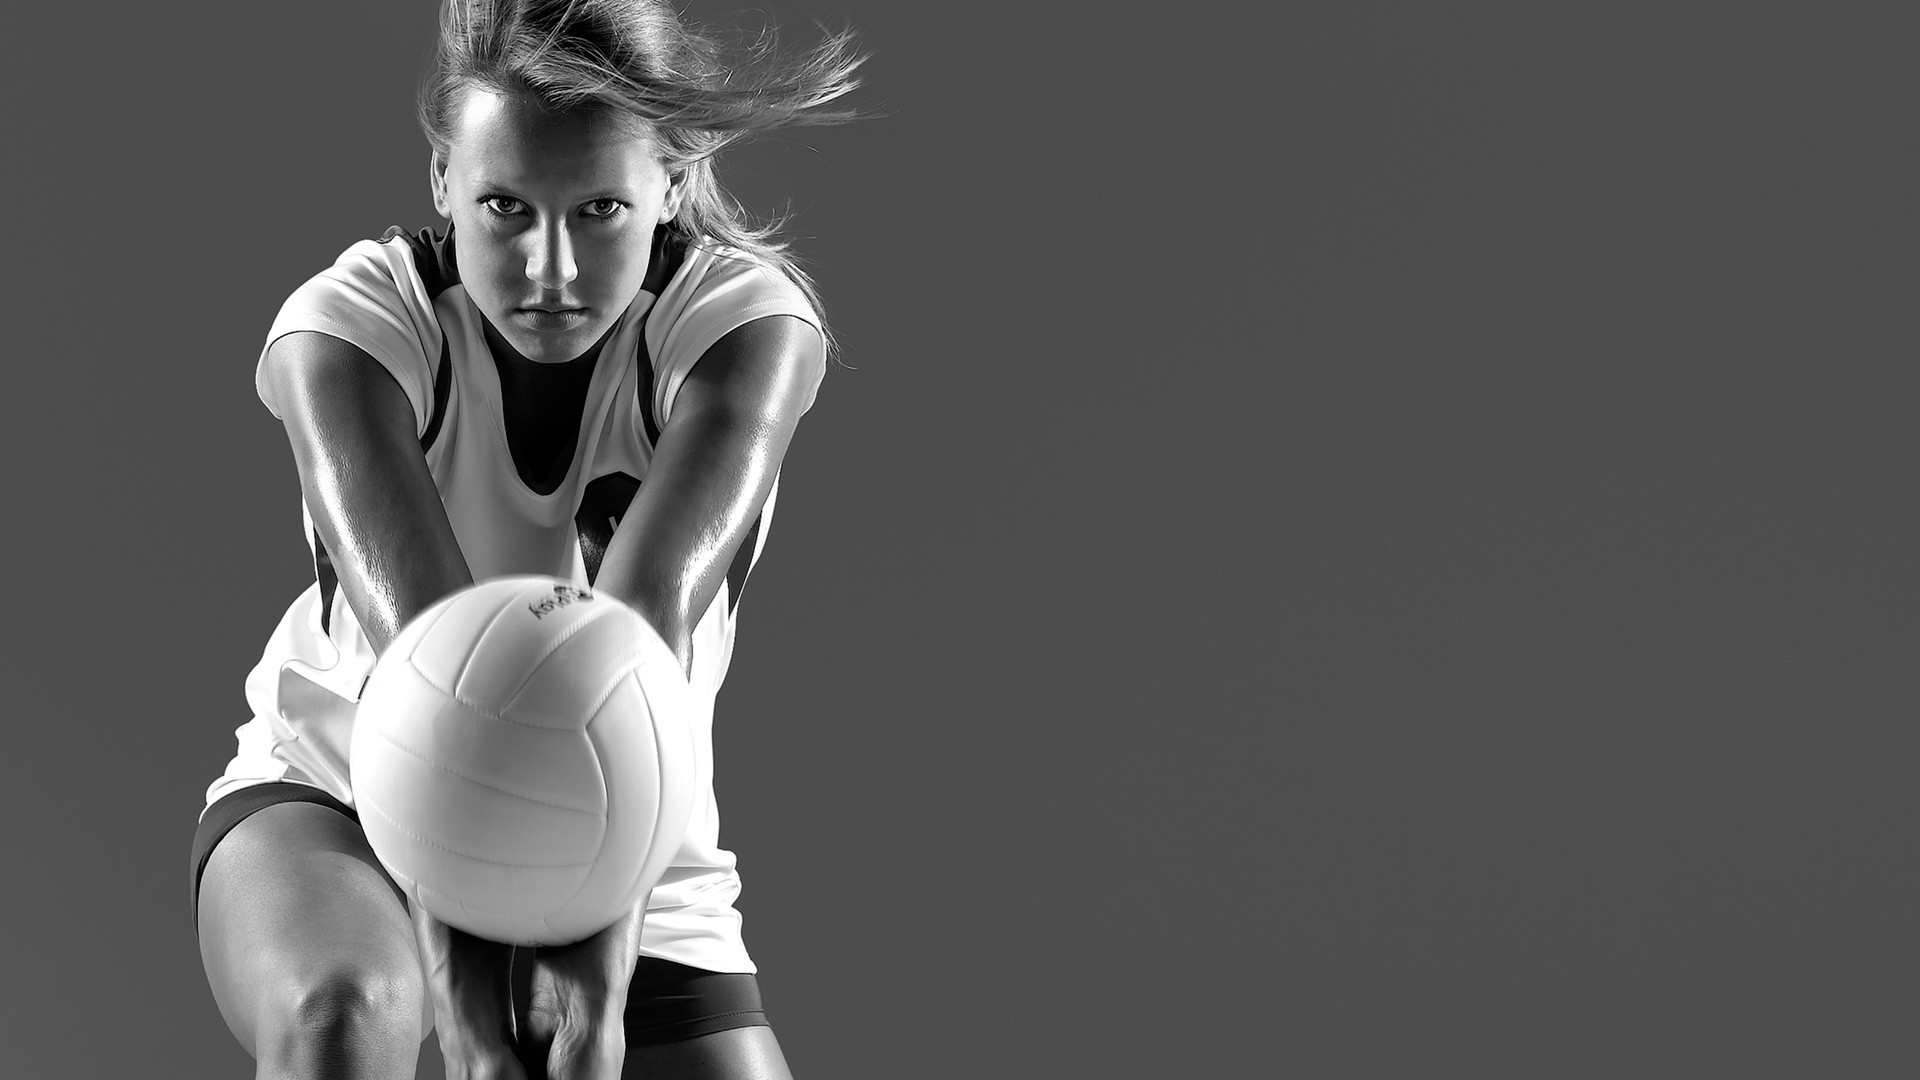 B/W photos of woman's volleyball player